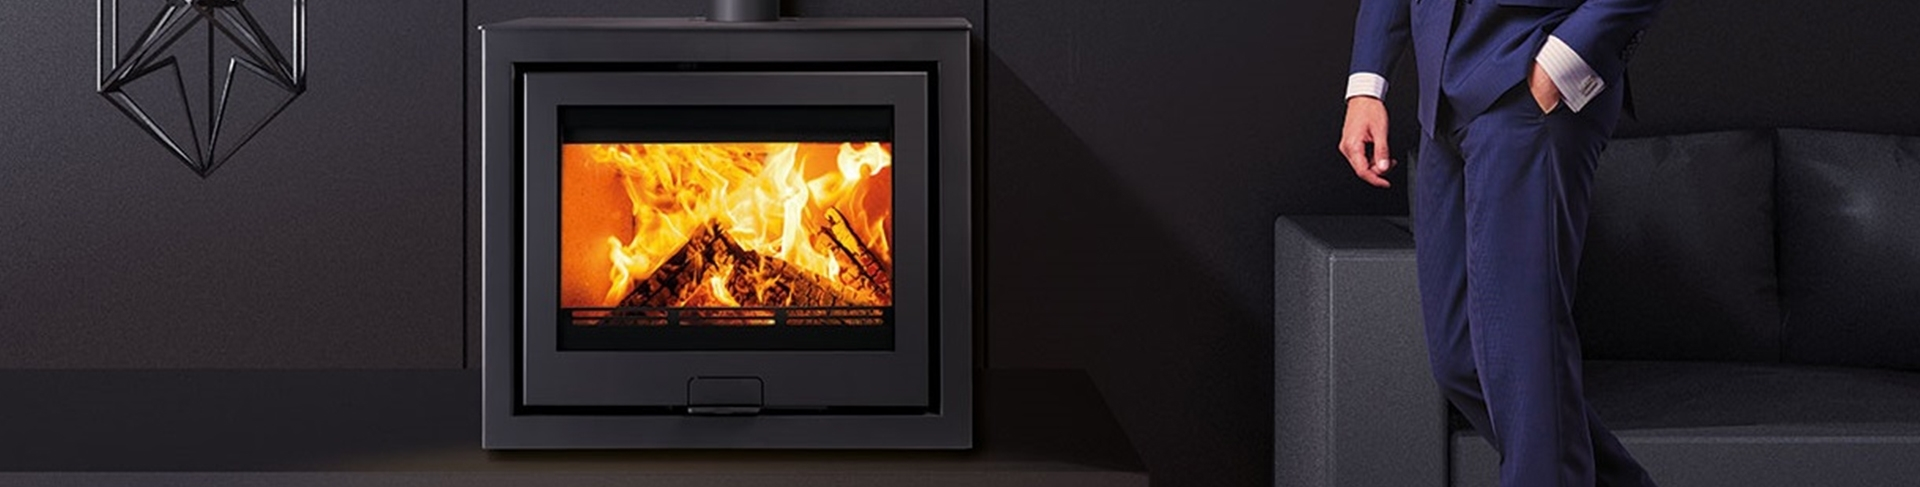 Fireplace Damper Open or Closed Luxury the London Fireplaces